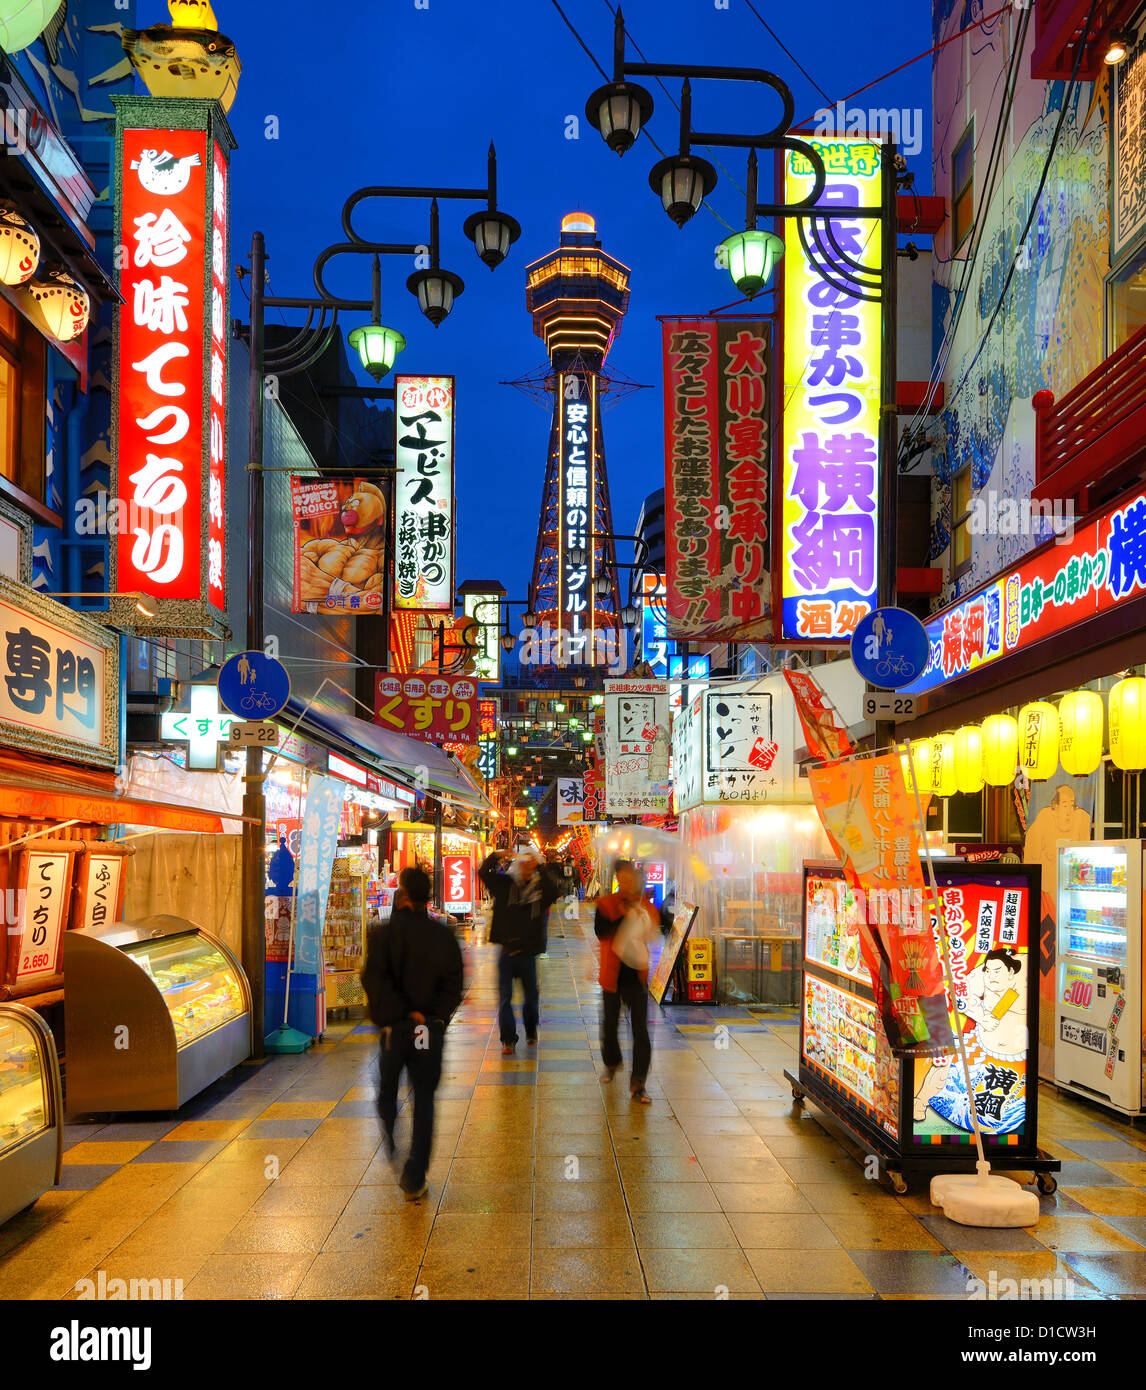 Shinsekai nightlife district in Osaka, Japan. - Stock Image